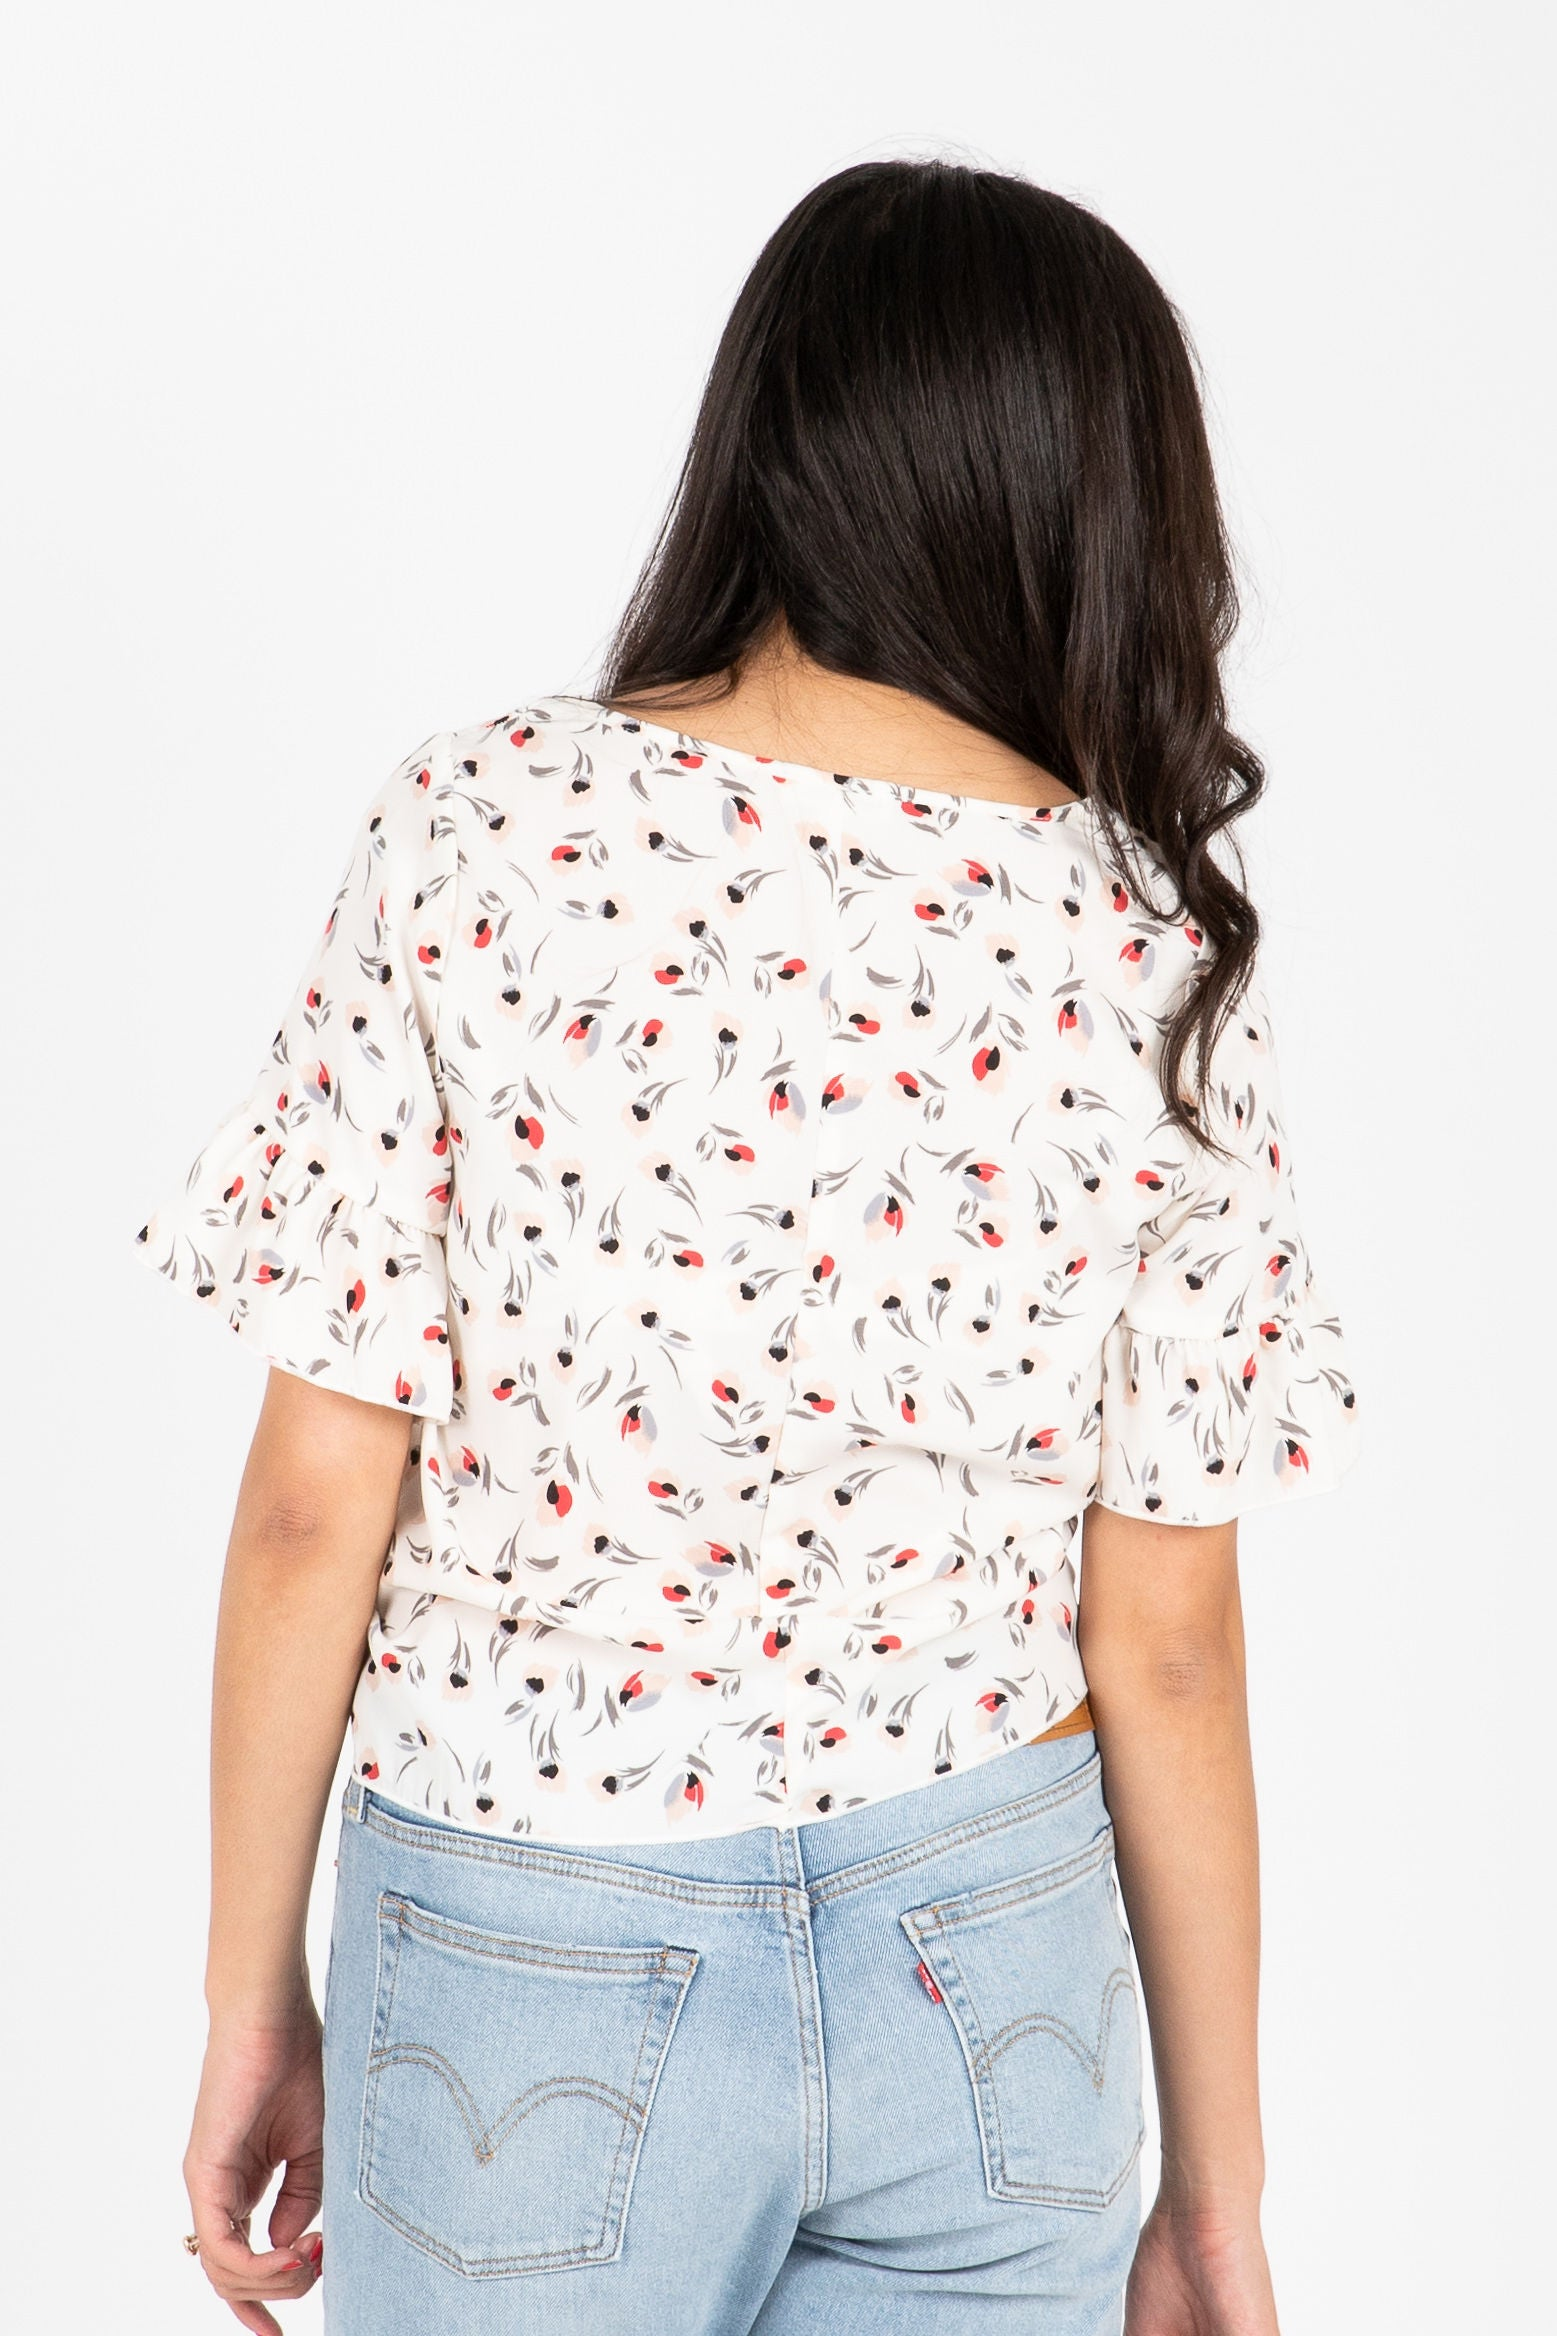 The Paradisco Floral Tie Front Blouse in White